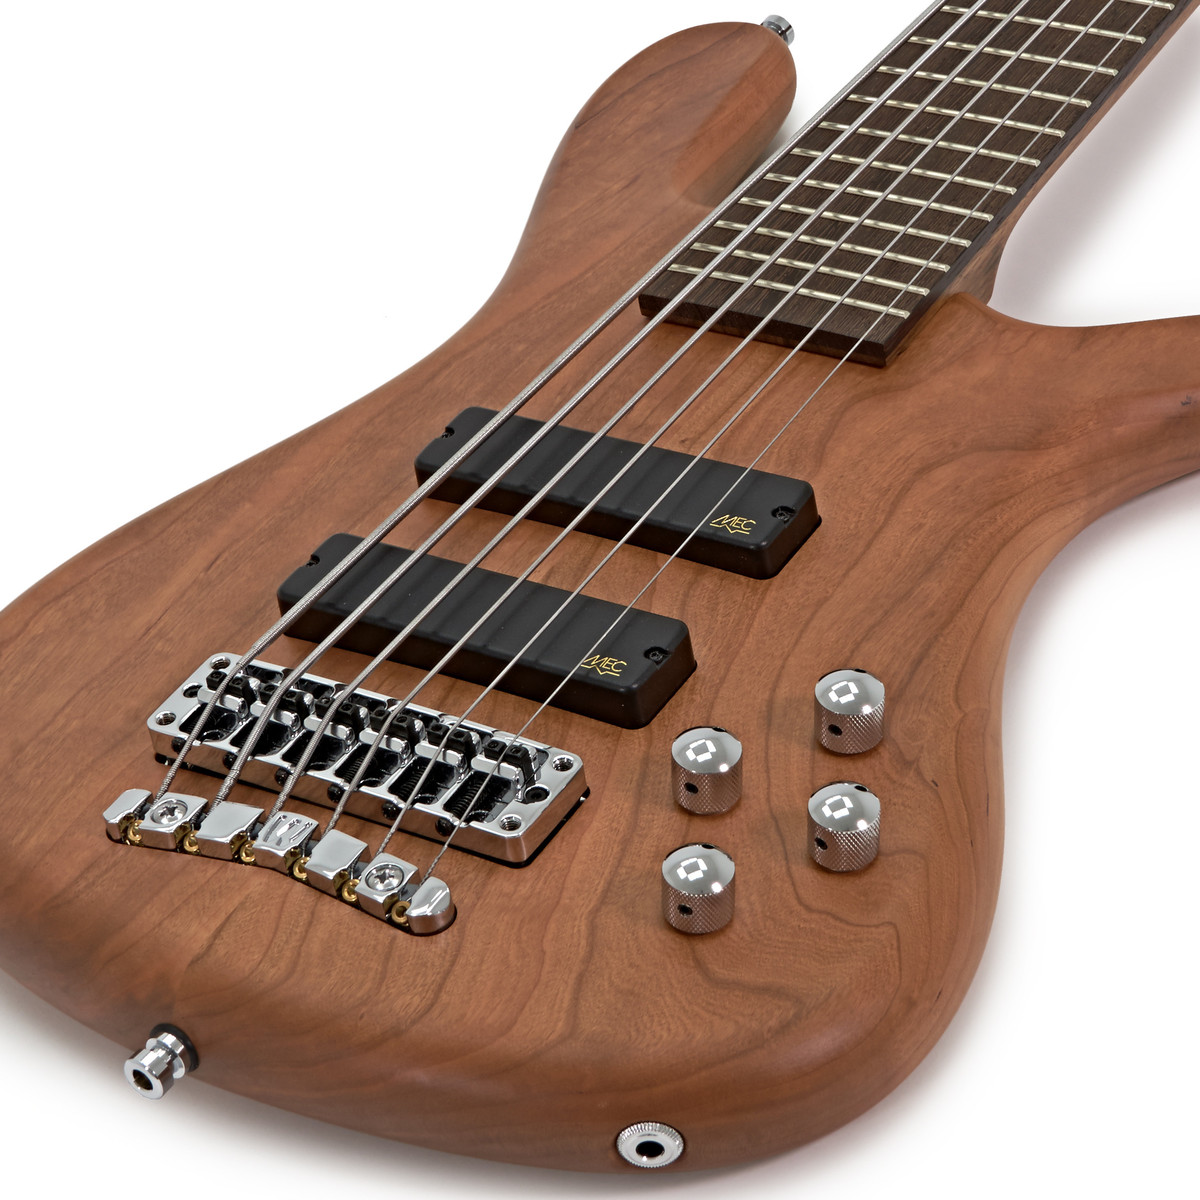 warwick german pro series streamer lx active 6 string bass natural at. Black Bedroom Furniture Sets. Home Design Ideas